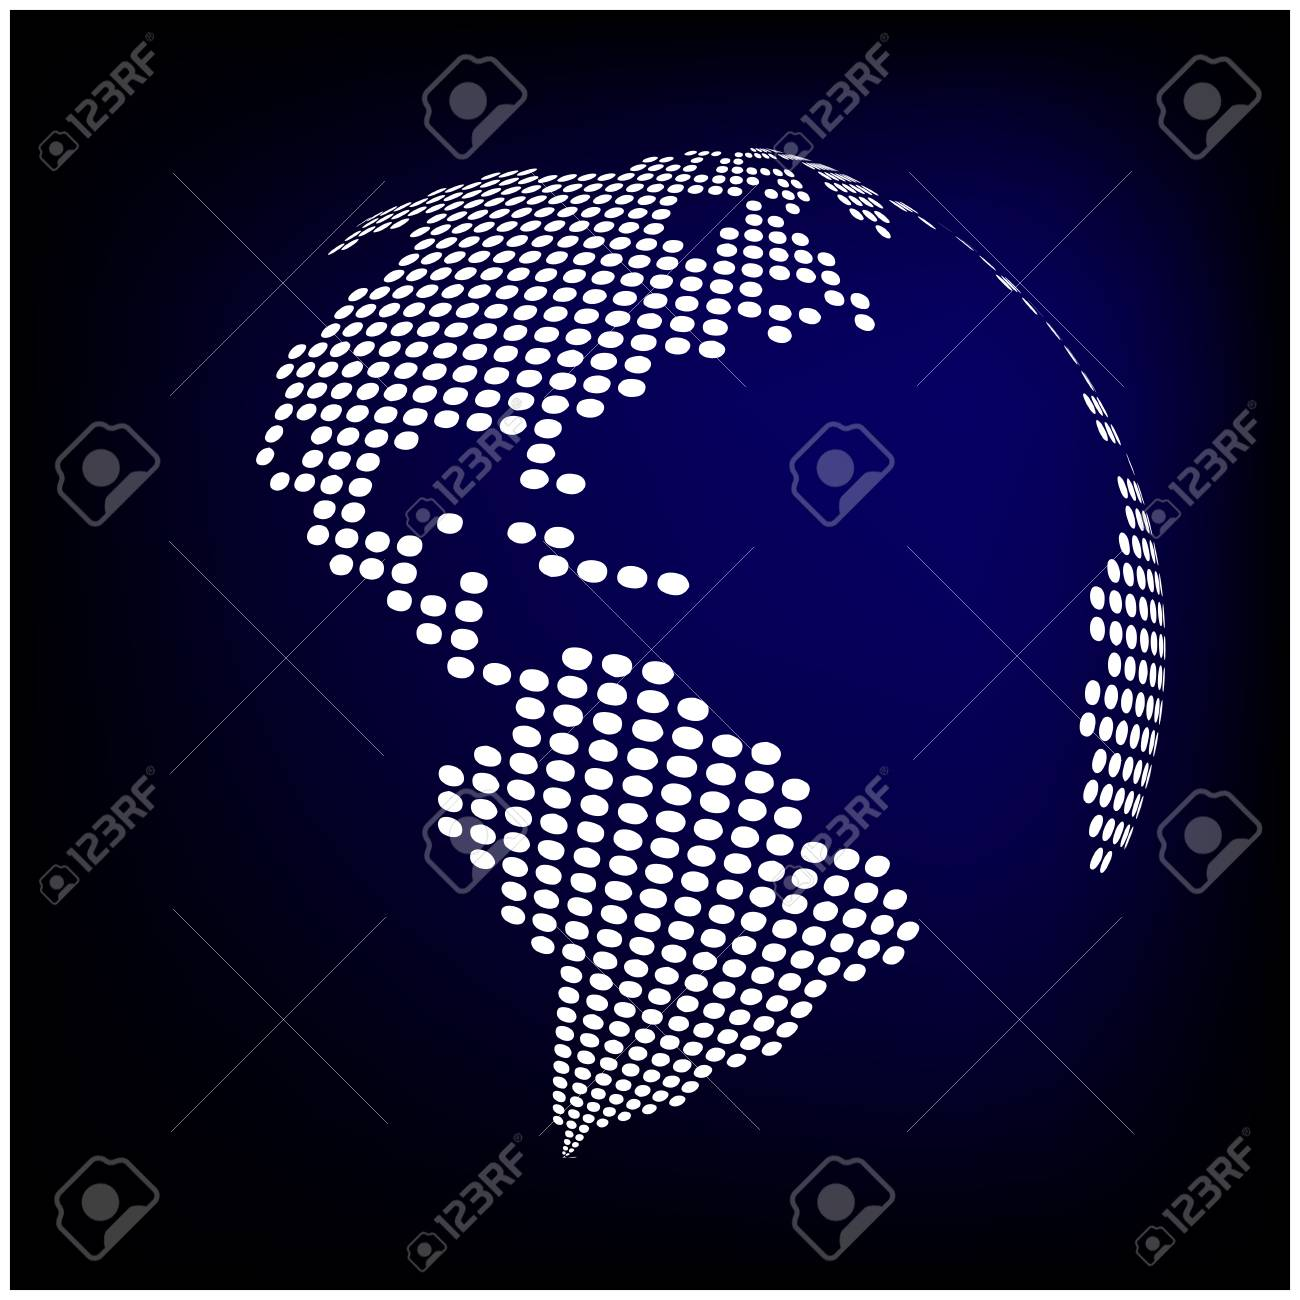 Globe earth world map abstract dotted vector background blue globe earth world map abstract dotted vector background blue wallpaper illustration foto de archivo gumiabroncs Images